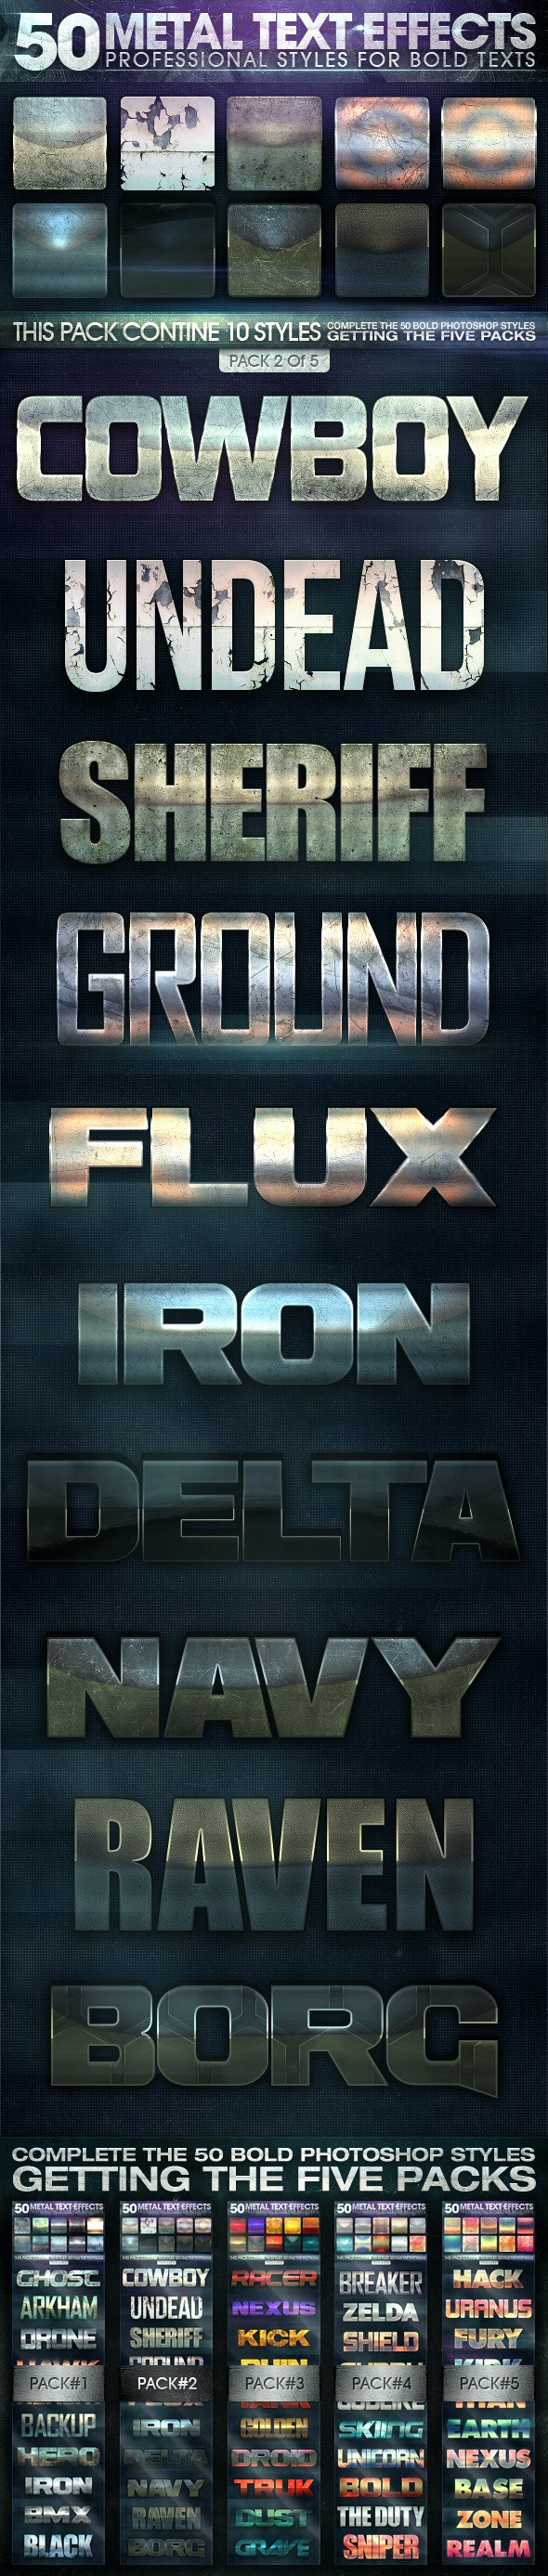 50 Metal Text Effects 2 of 5 - Text Effects Styles